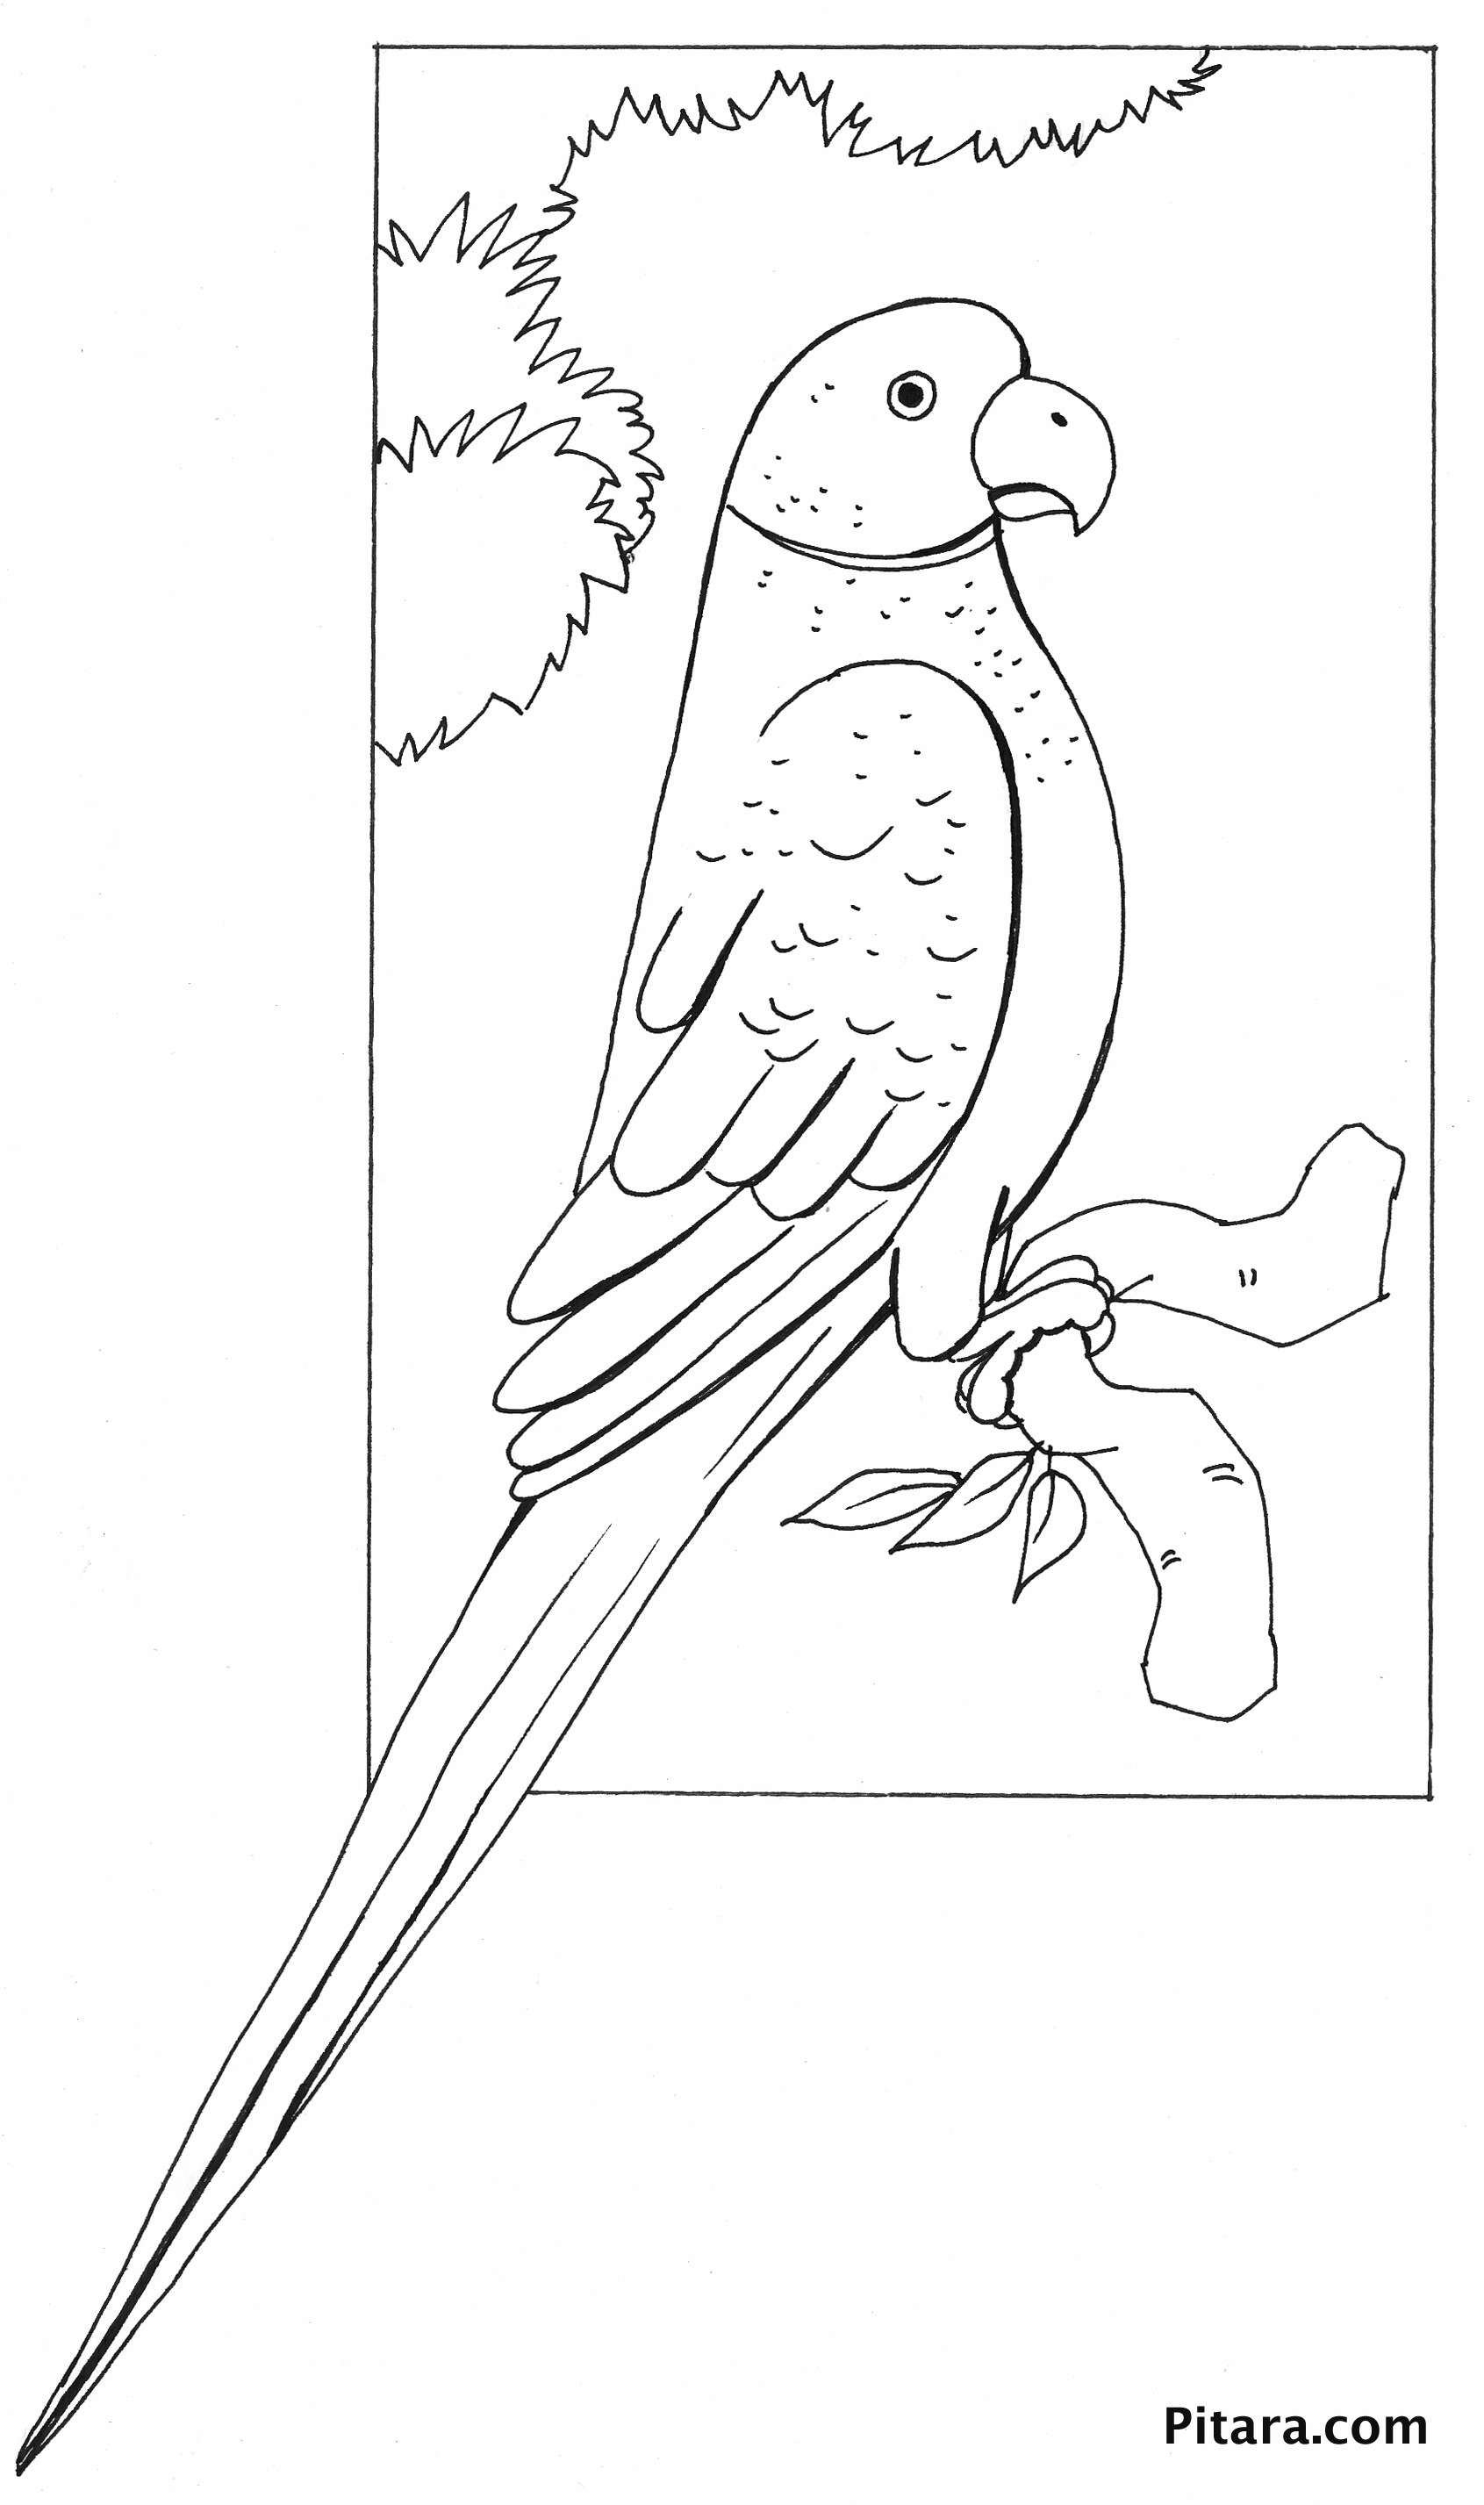 coloring parrot for kids amazon parrot coloring download amazon parrot coloring parrot kids for coloring